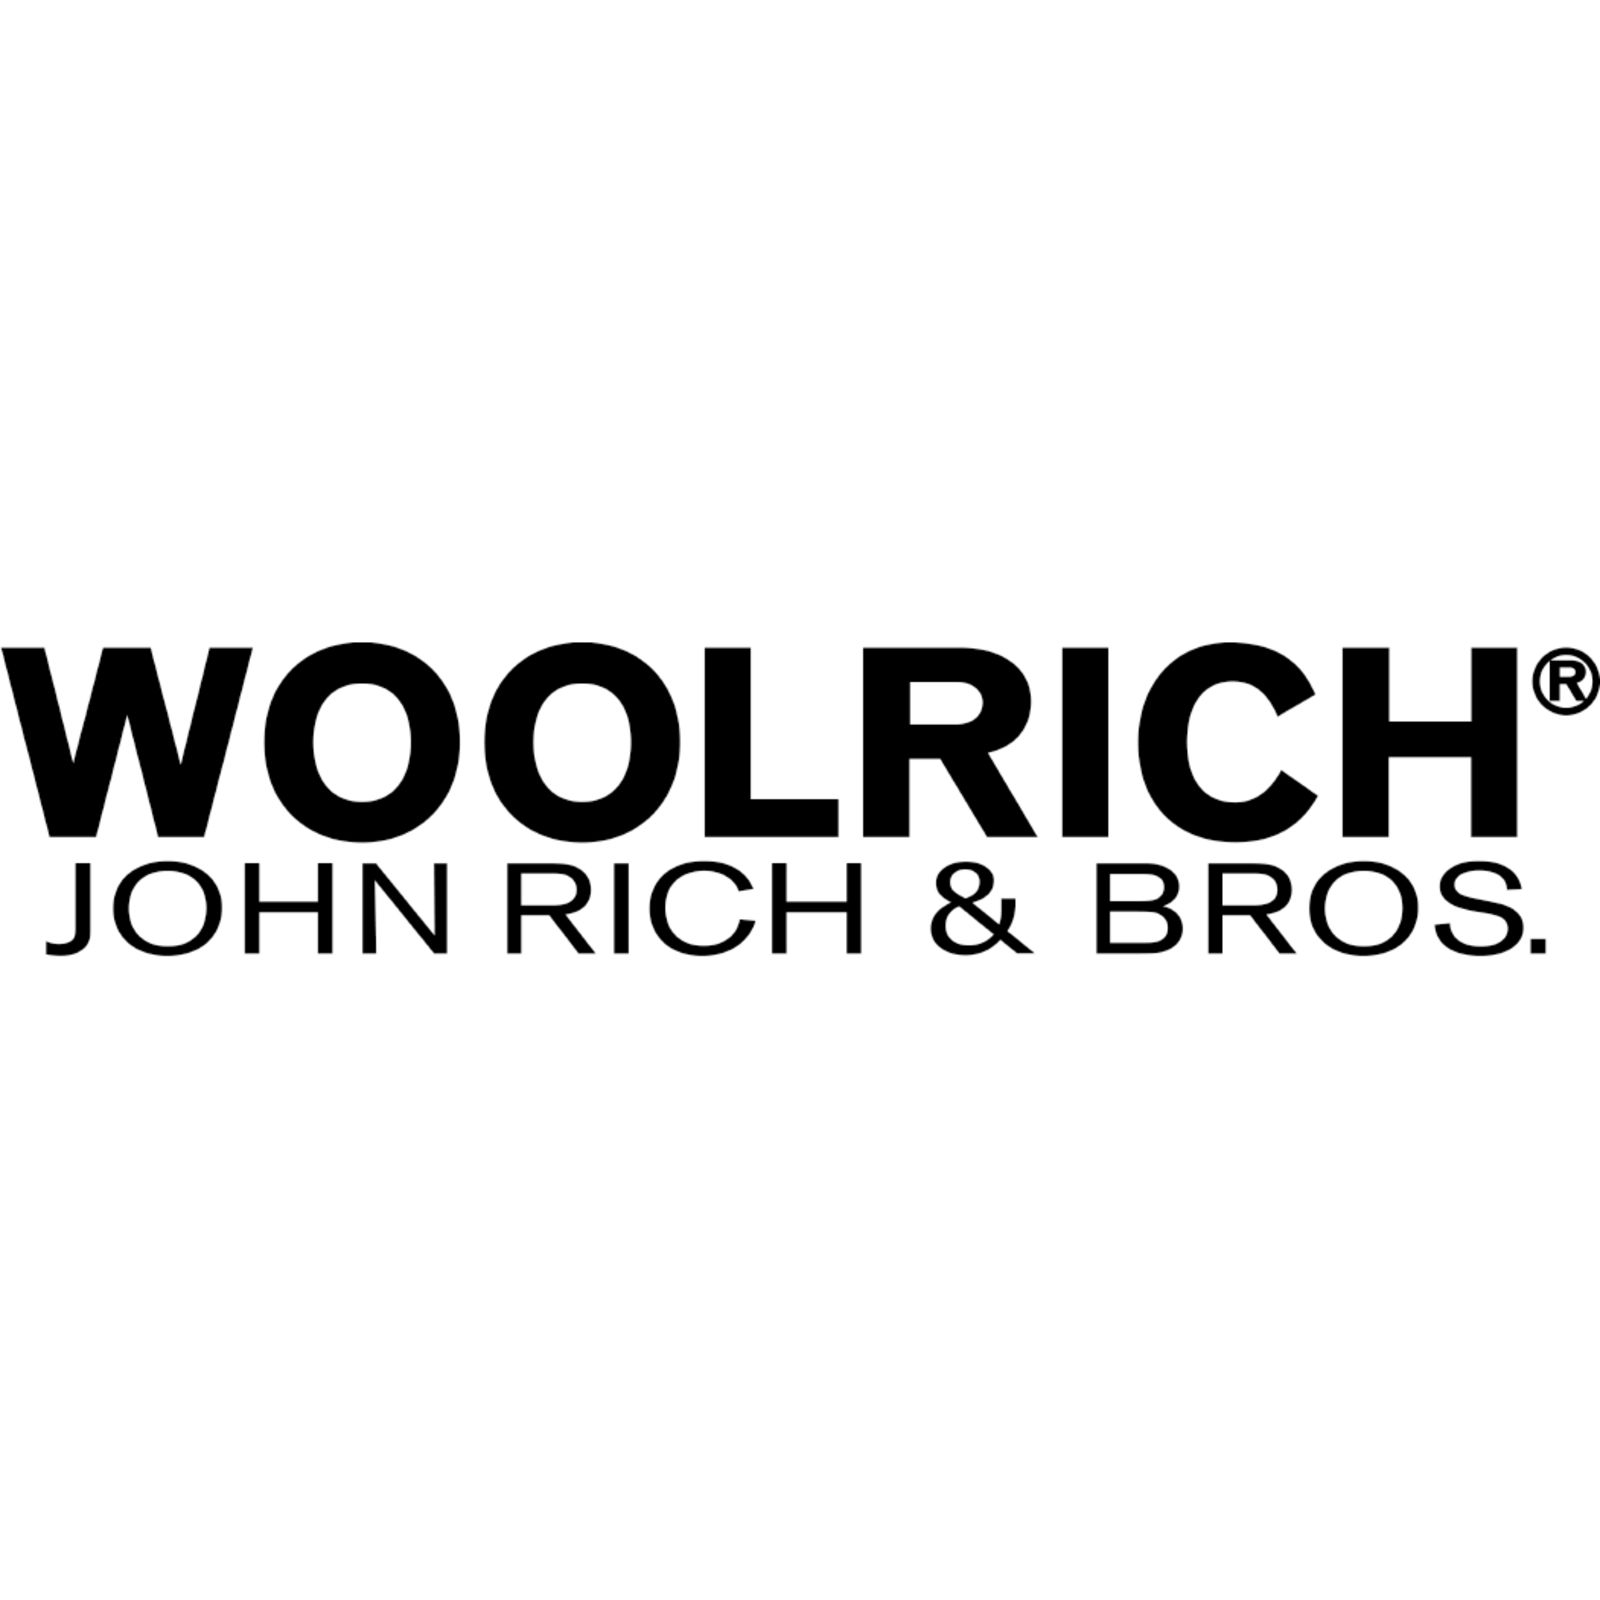 WOOLRICH (Image 1)